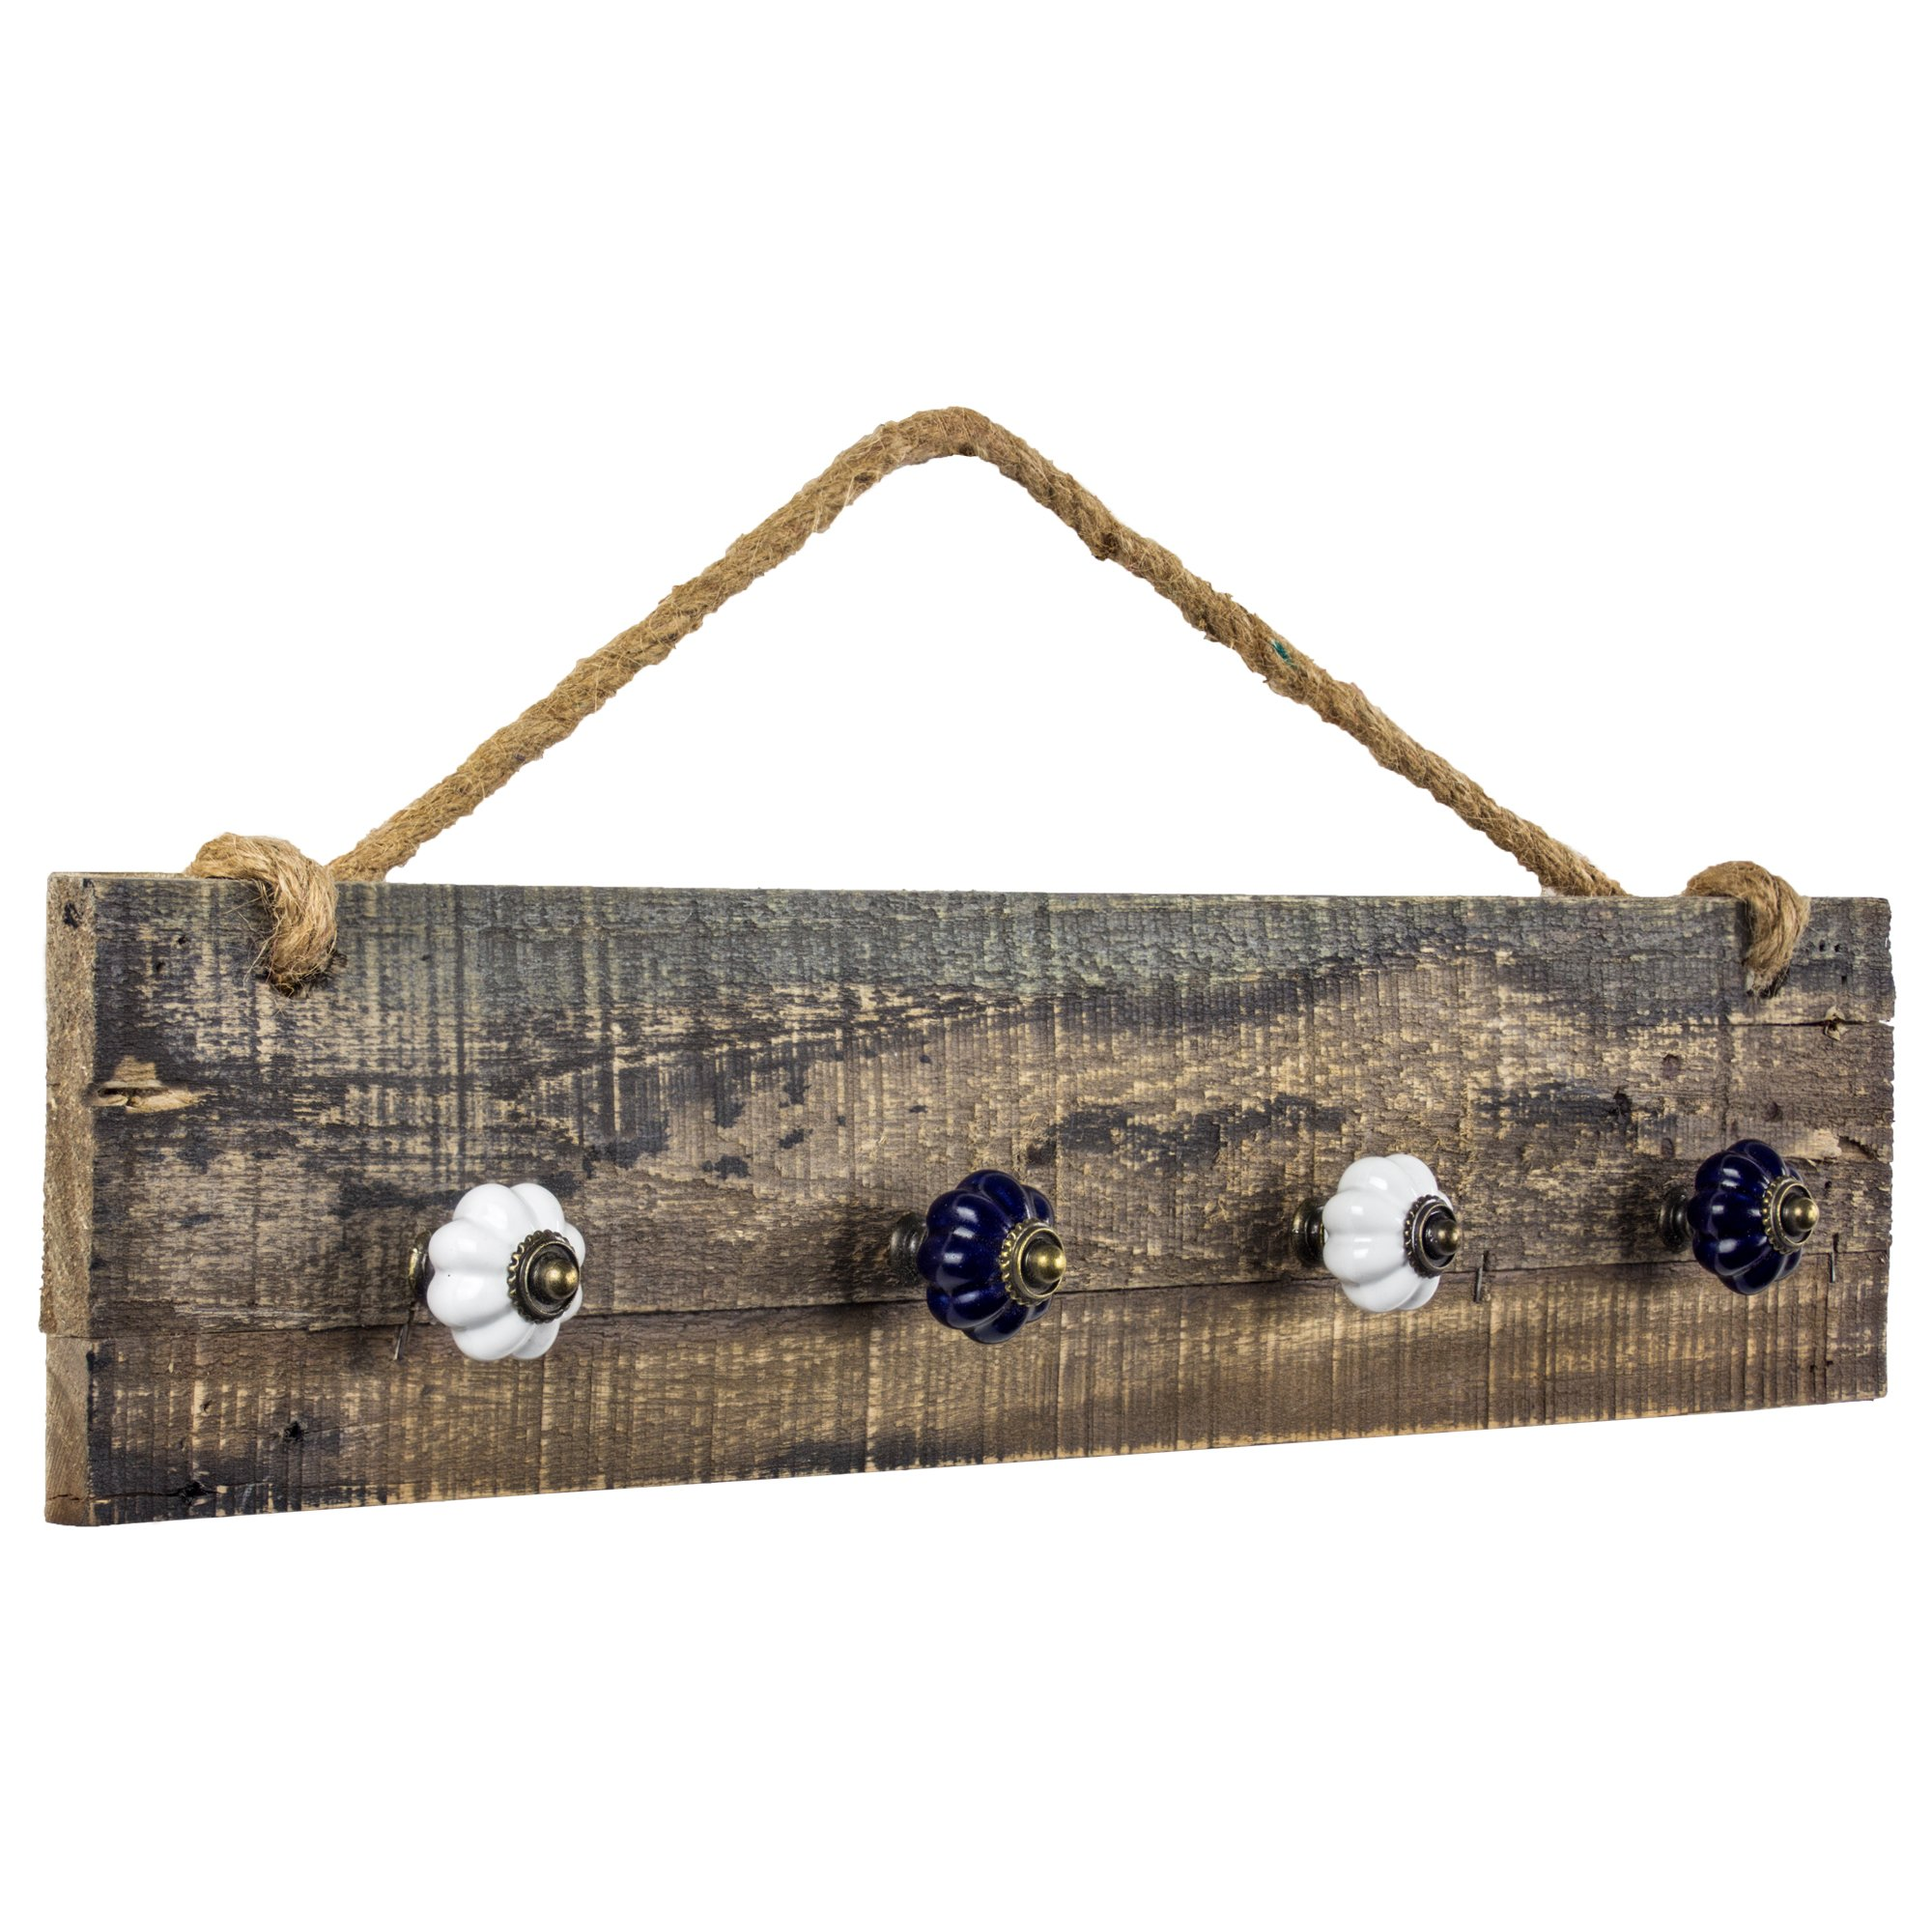 American Art Décor Rustic Wood Hanging Jewelry Necklace Organizer with Hooks